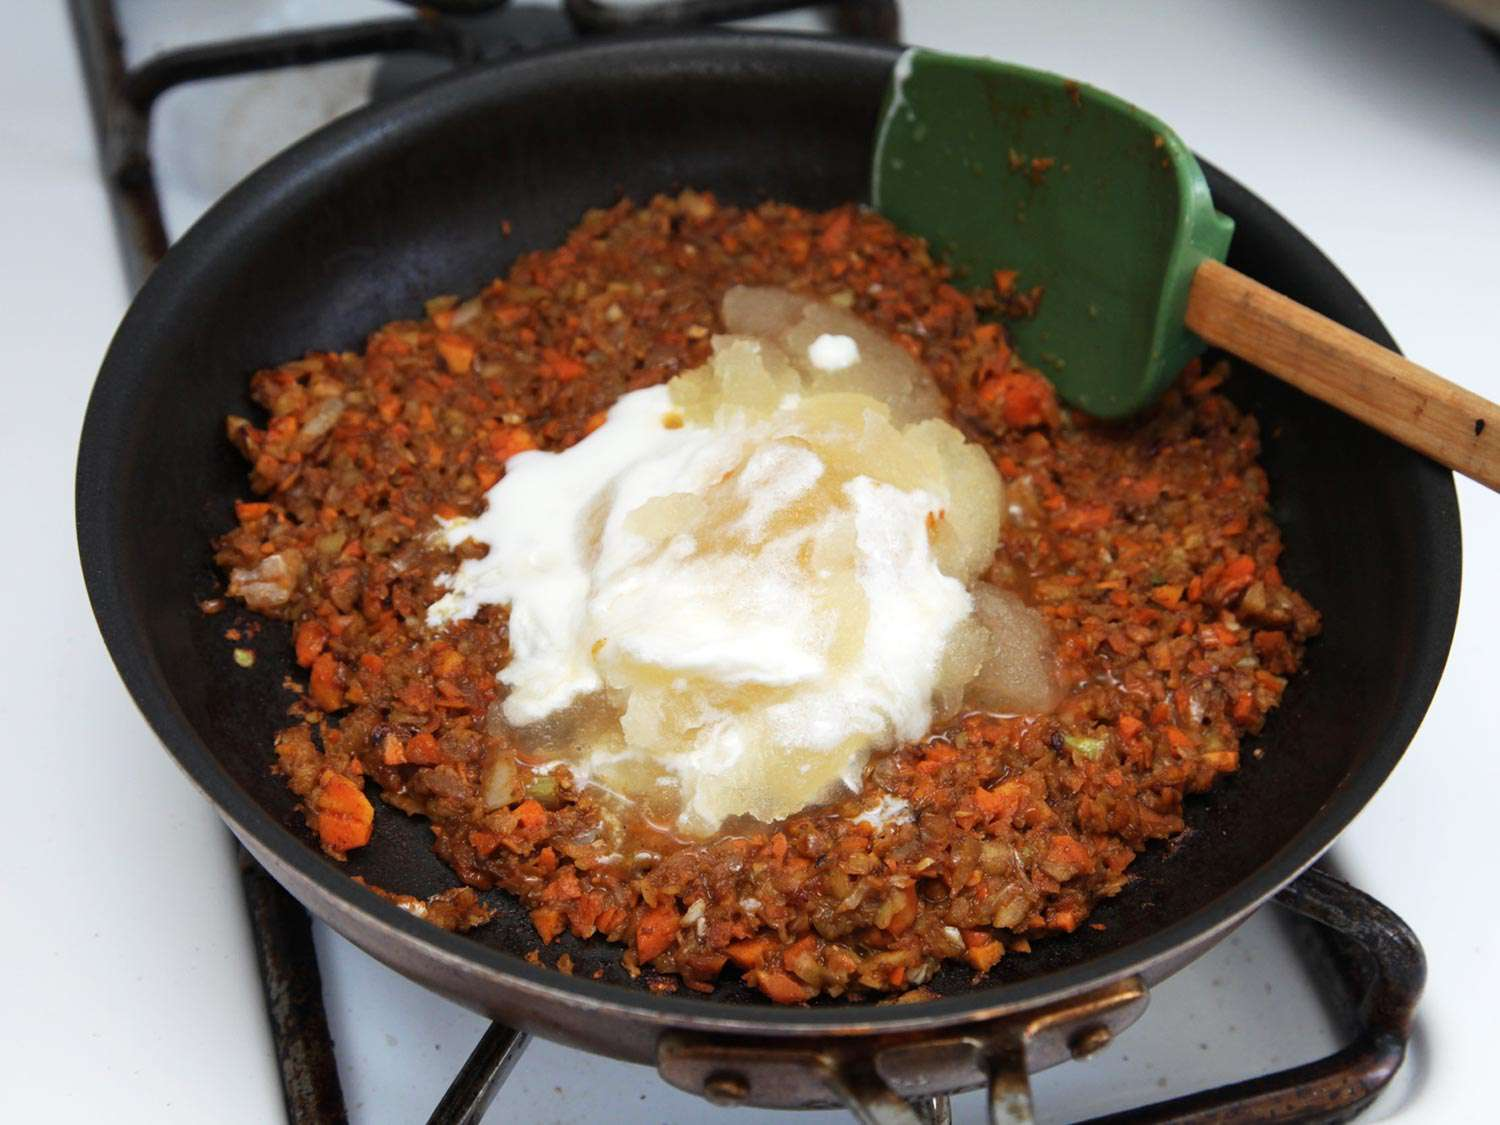 Cooked vegetables and panade in skillet